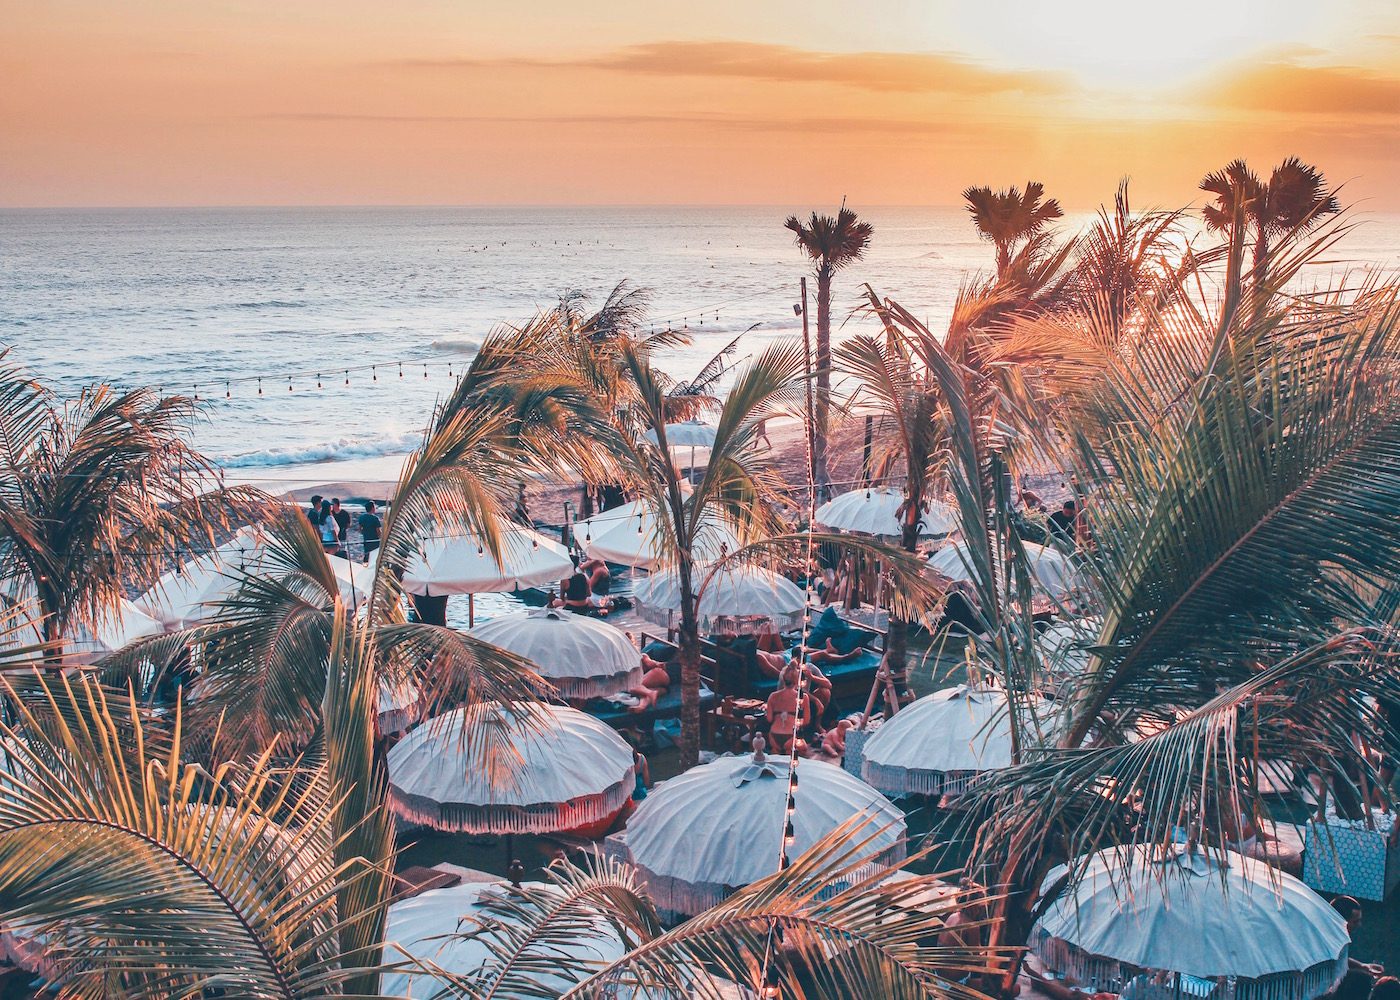 Ocean sunset at The Lawn beach club in Canggu, Bali, Indonesia